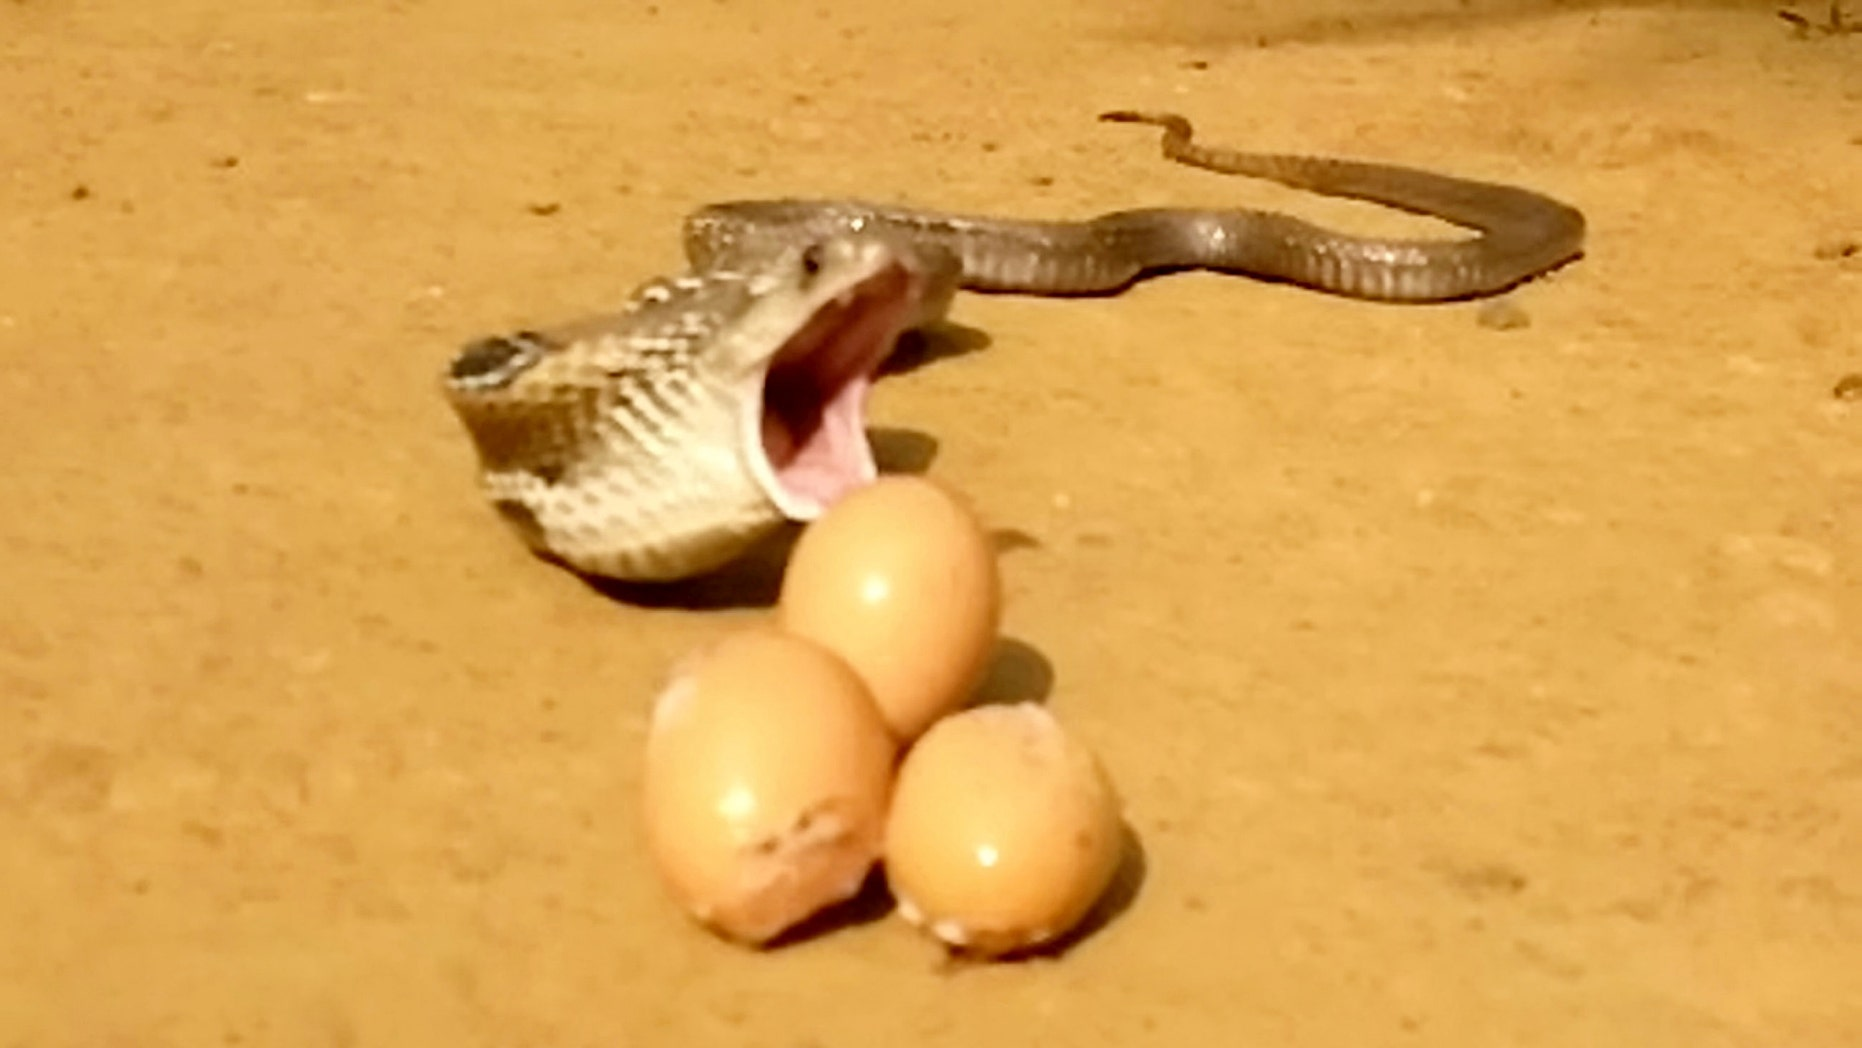 Video grab of a snake regurgitating seven eggs in Kerala, India. Sujith VP was called to remove the snake after it attacked a henhouse and proceeded to swallow eight eggs. The cobra was later filmed throwing up seven of those eight eggs.